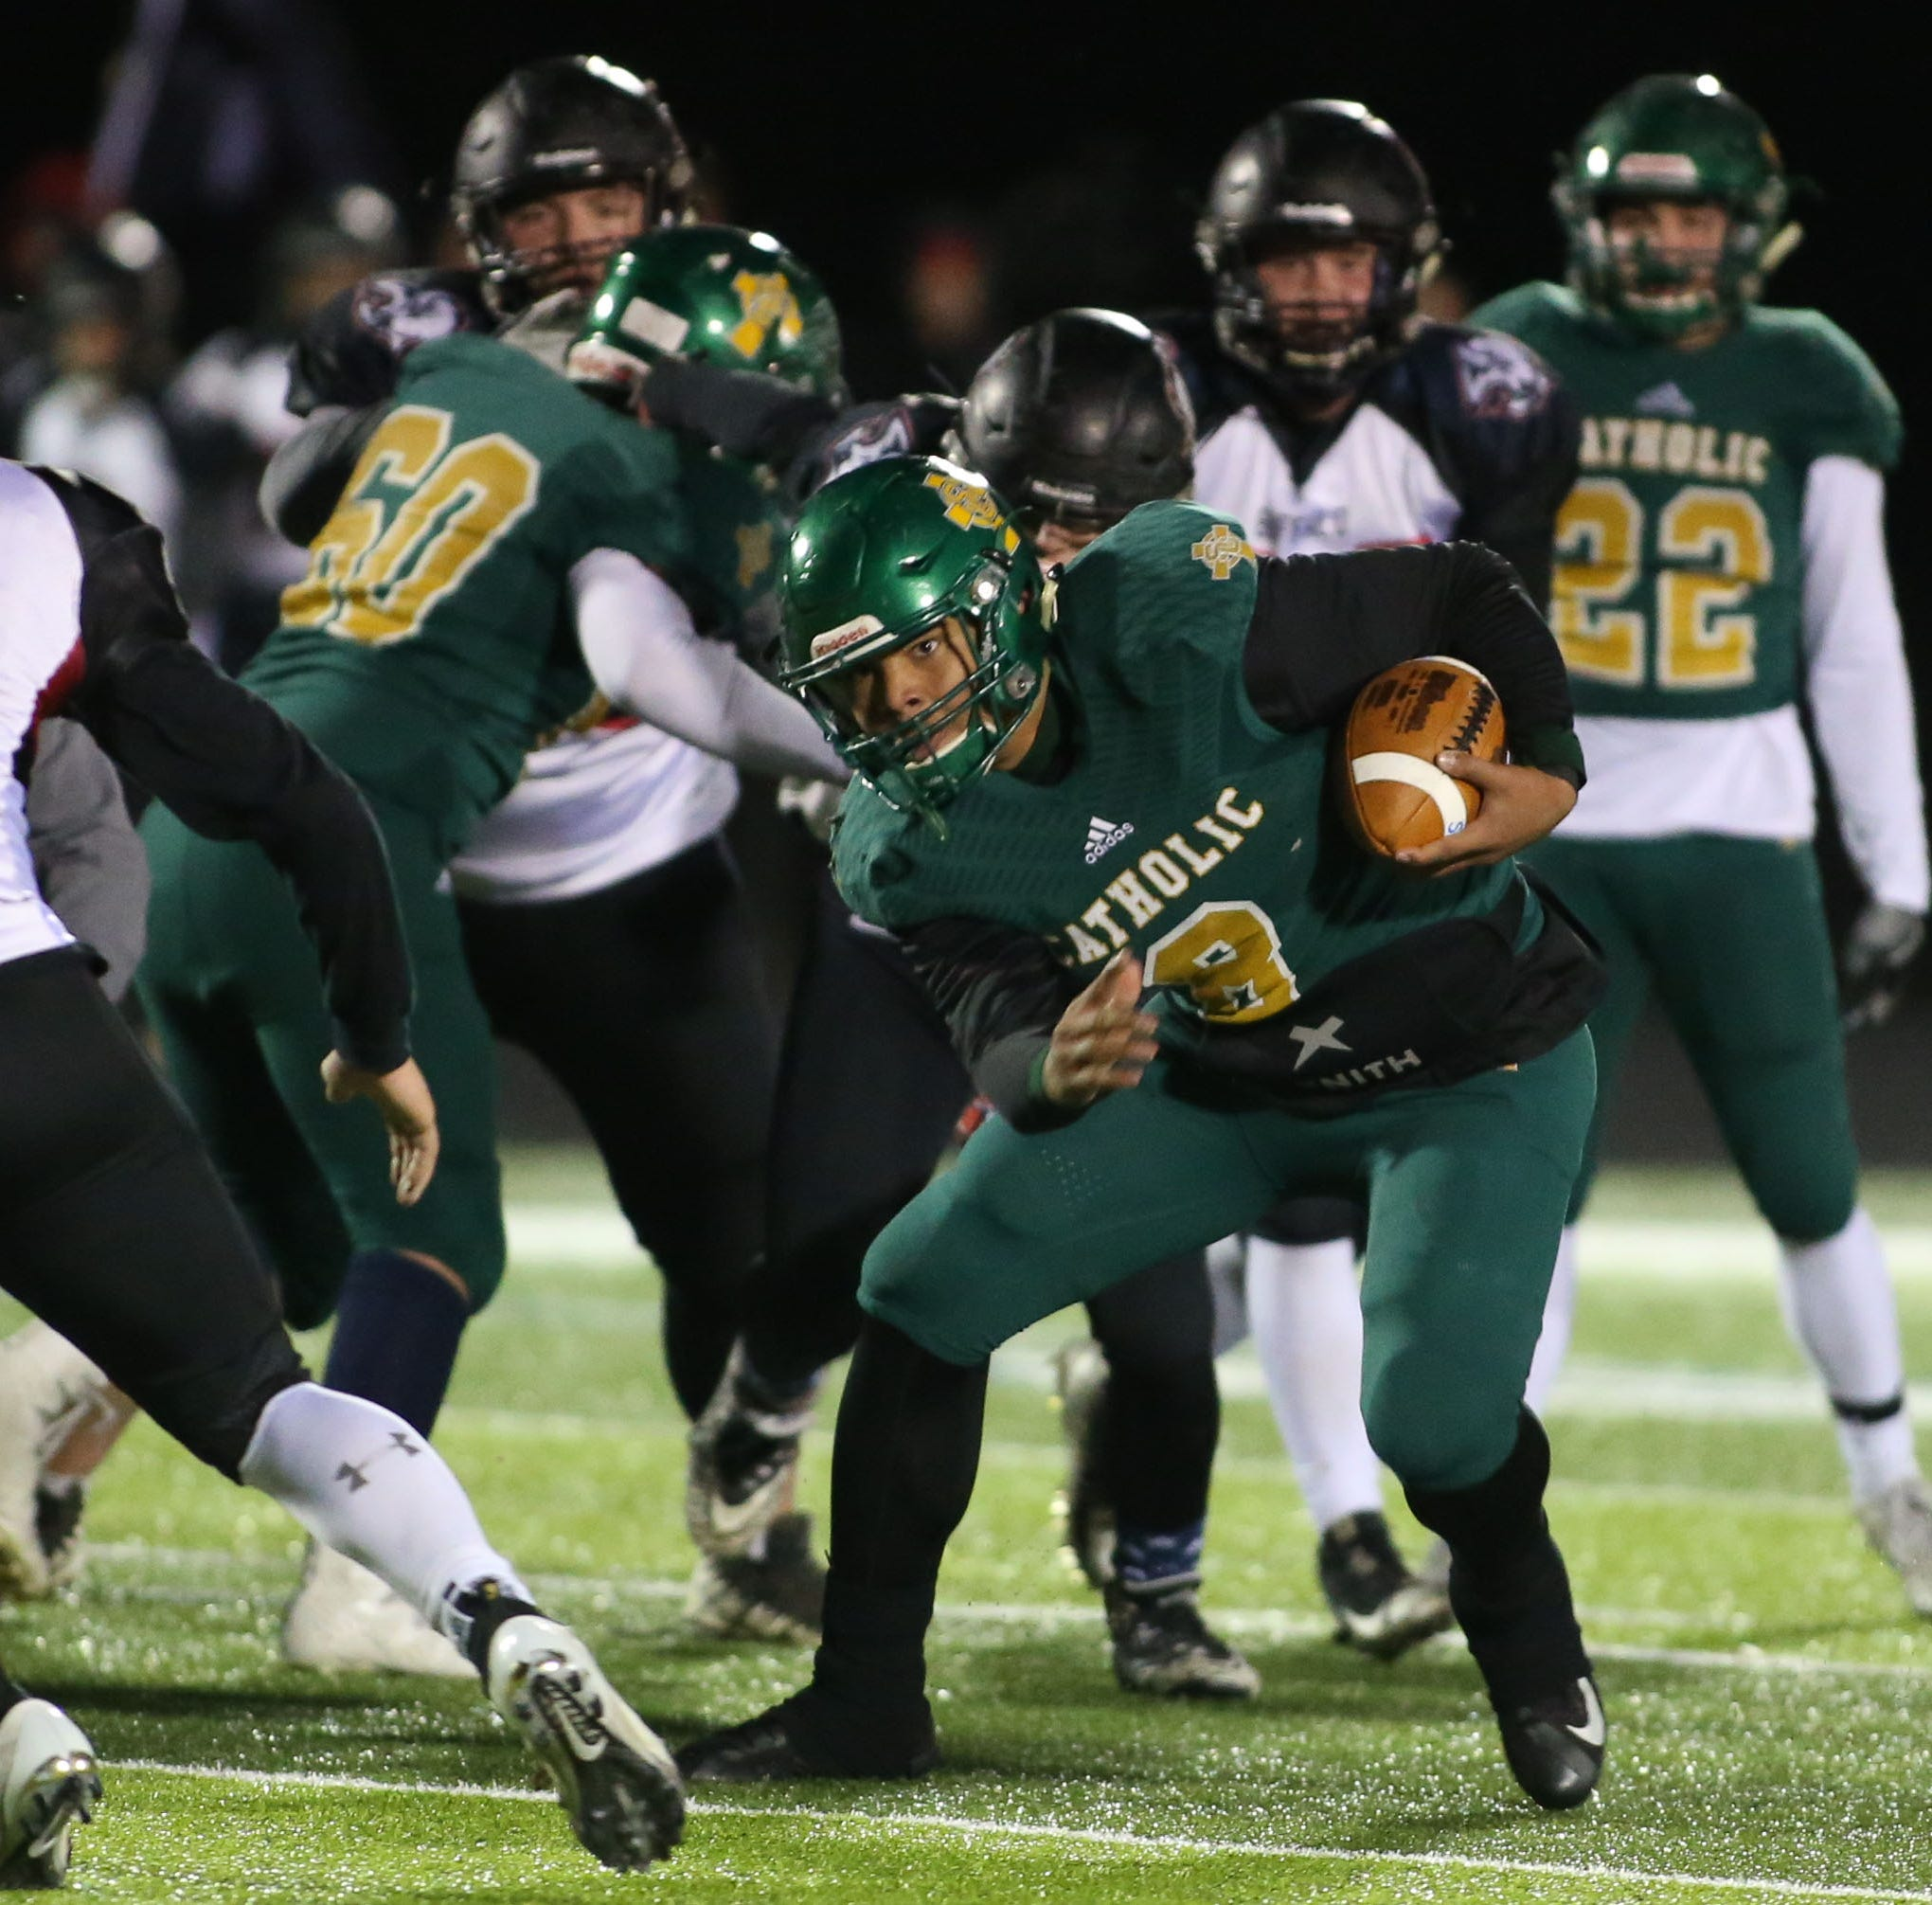 Springfield Catholic advances to state quarterfinals with big win over Buffalo